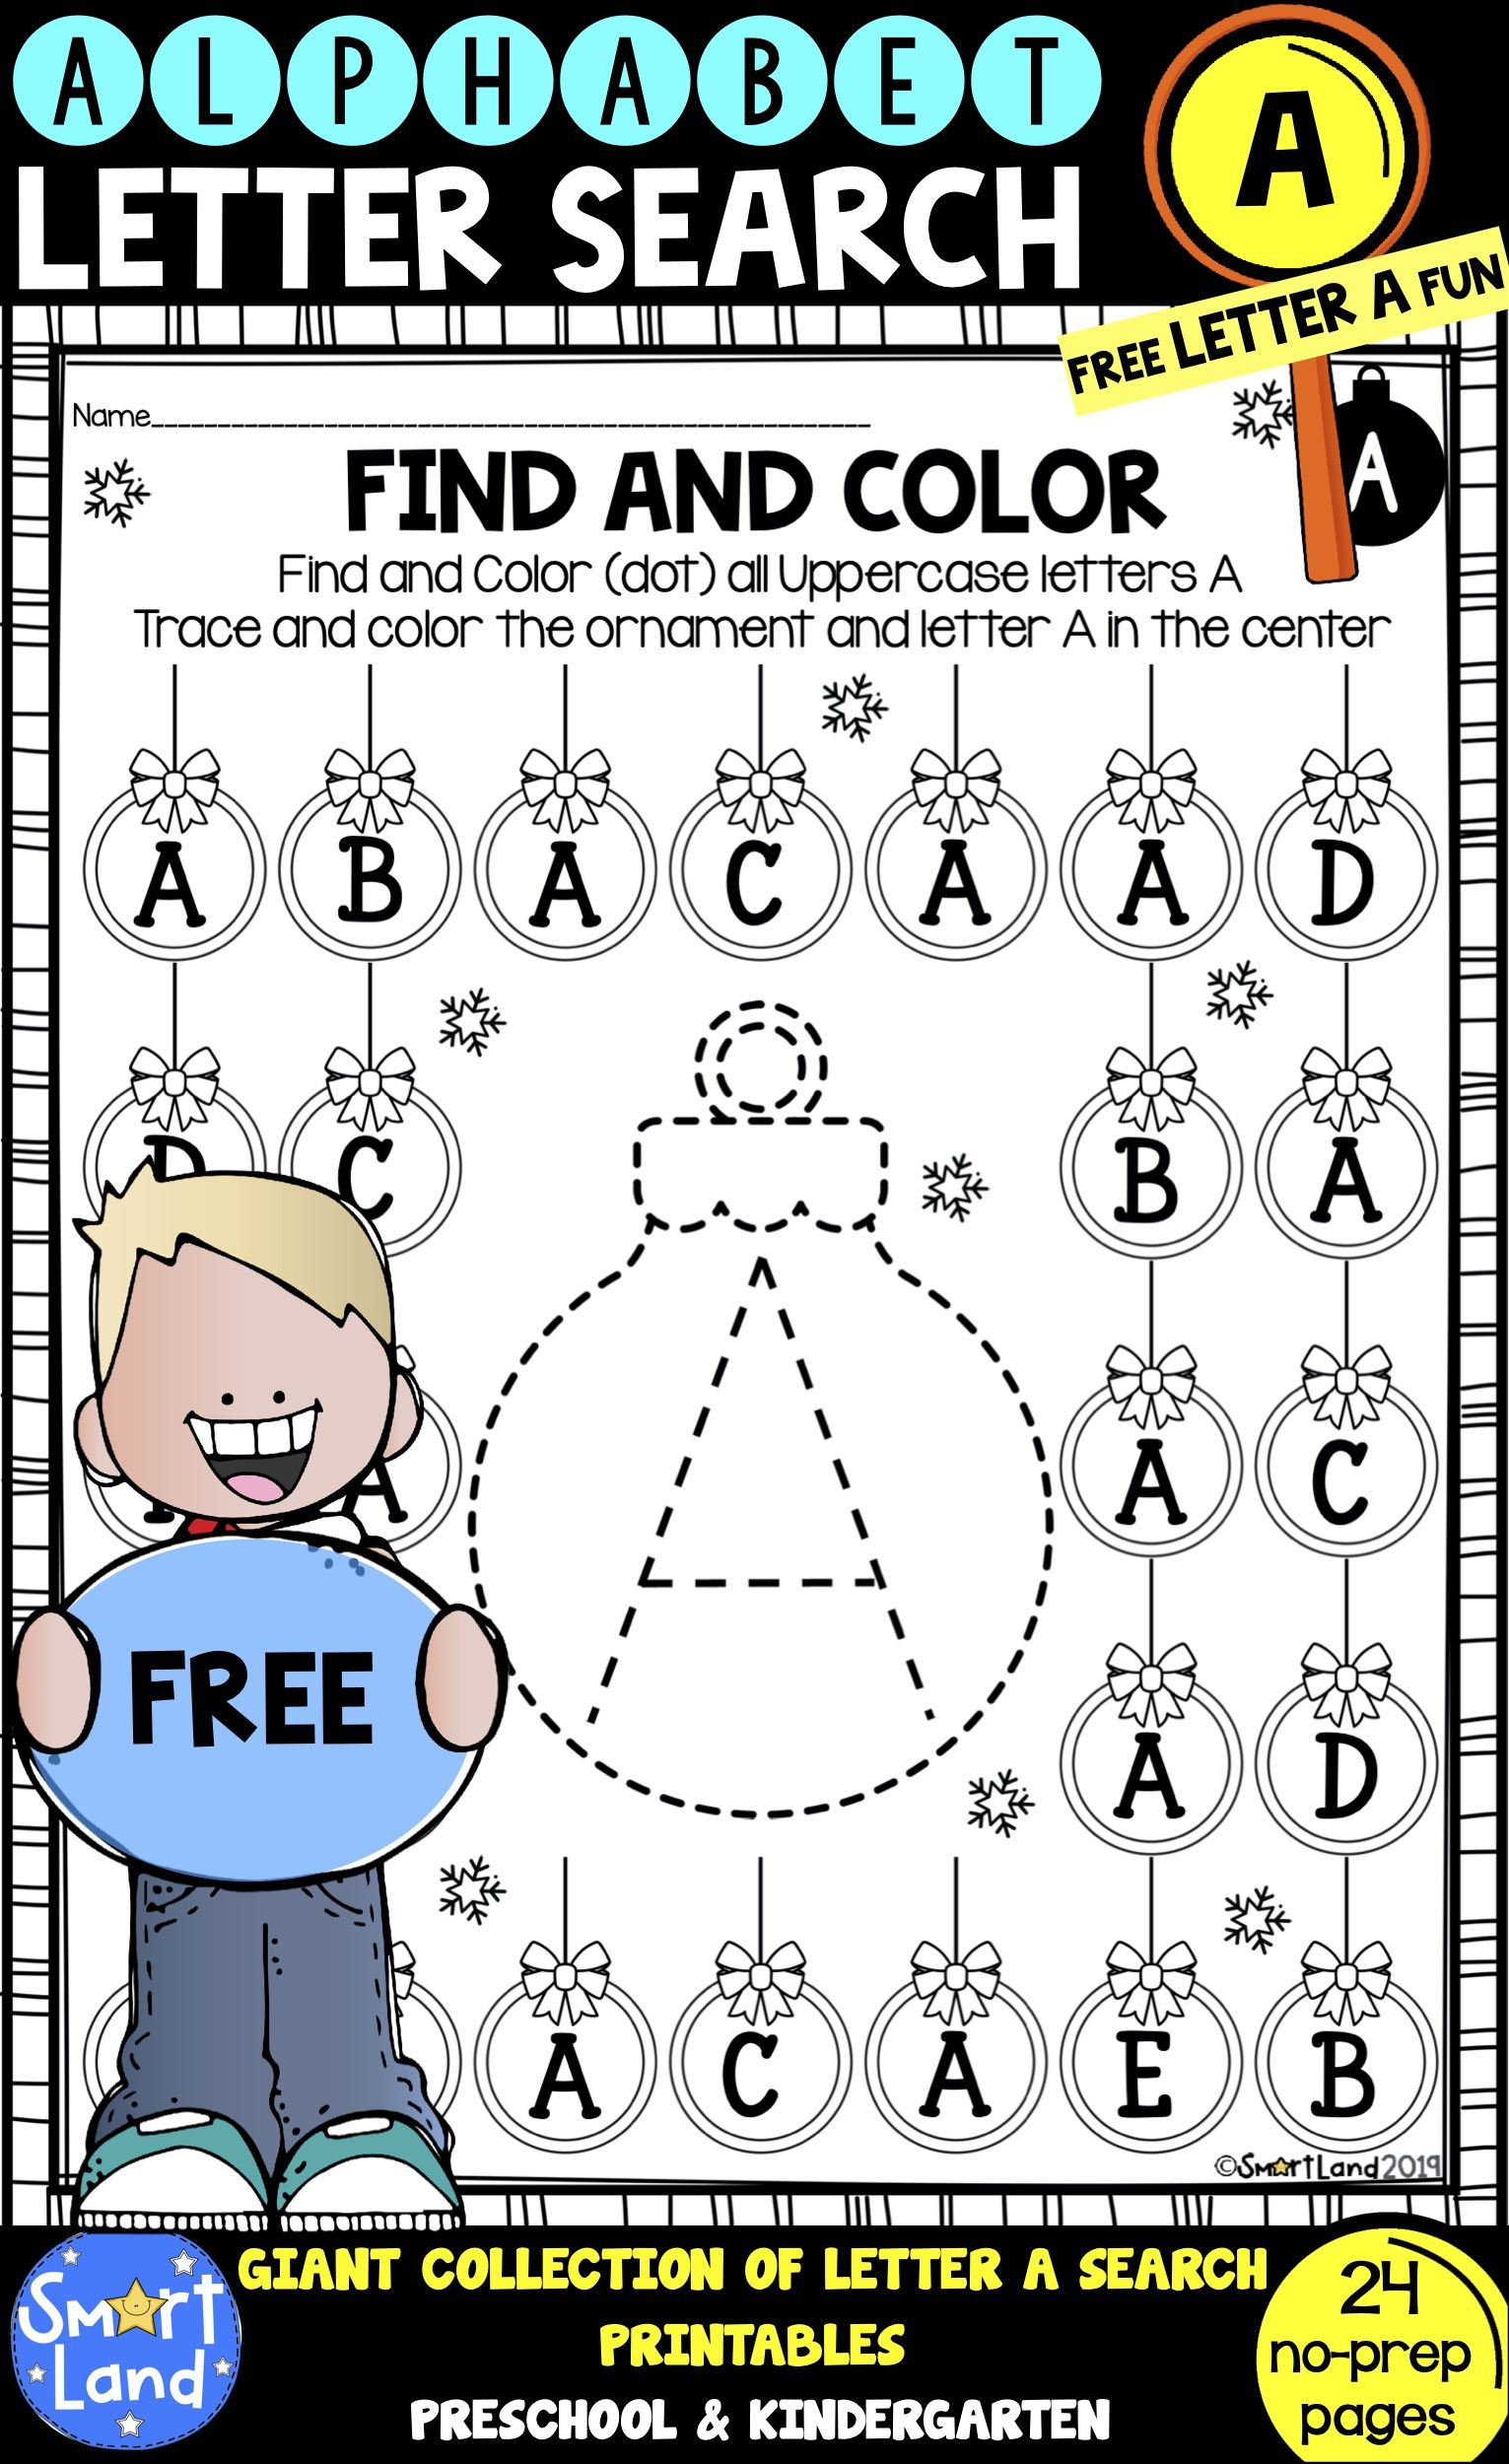 Alphabet Practice Free Letter A Search Worksheets Alphabet Practice Alphabet Activities Kindergarten Literacy Printables